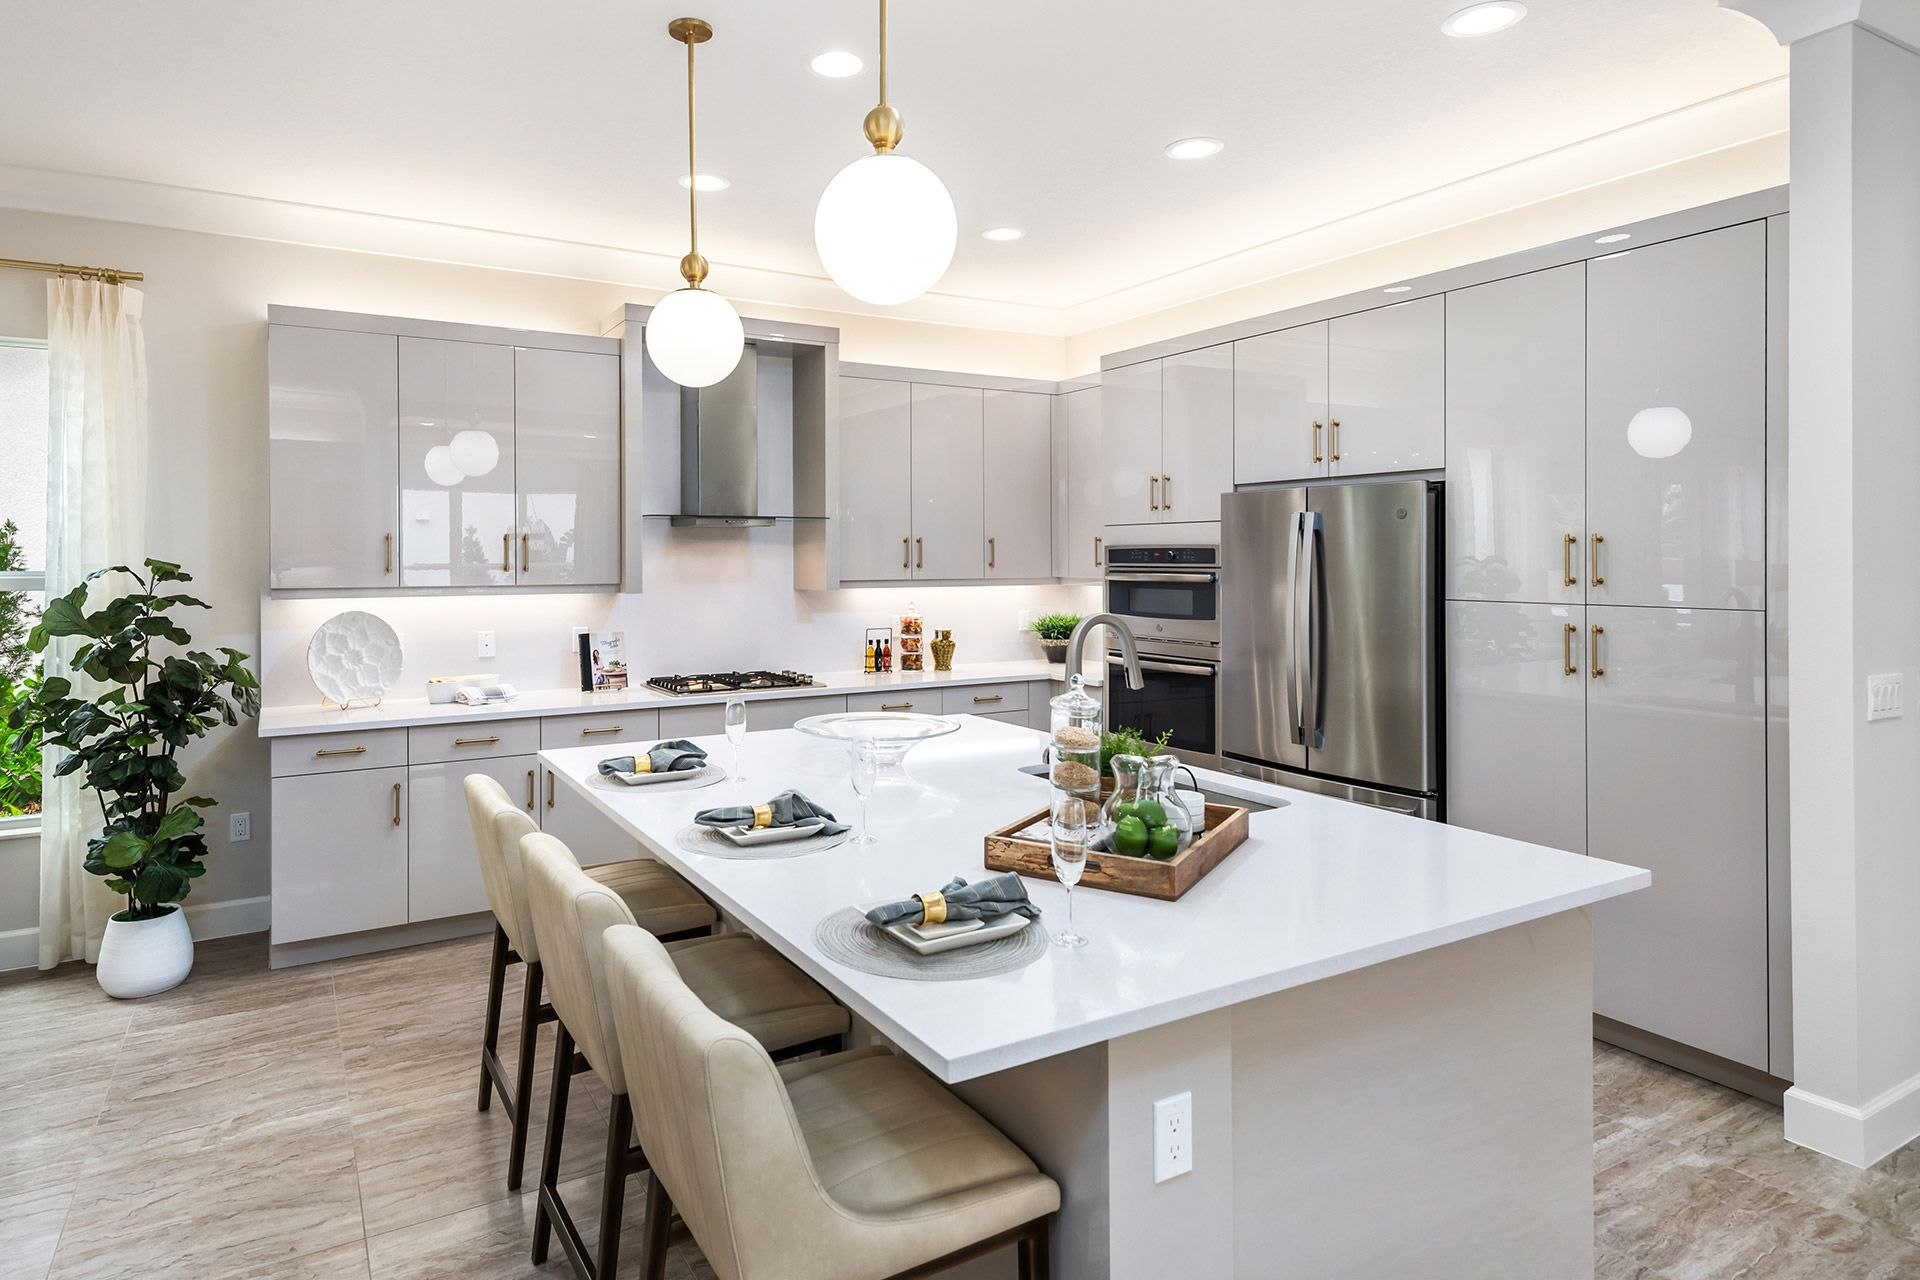 Kitchen featured in the Sanddollar By GL Homes in Naples, FL